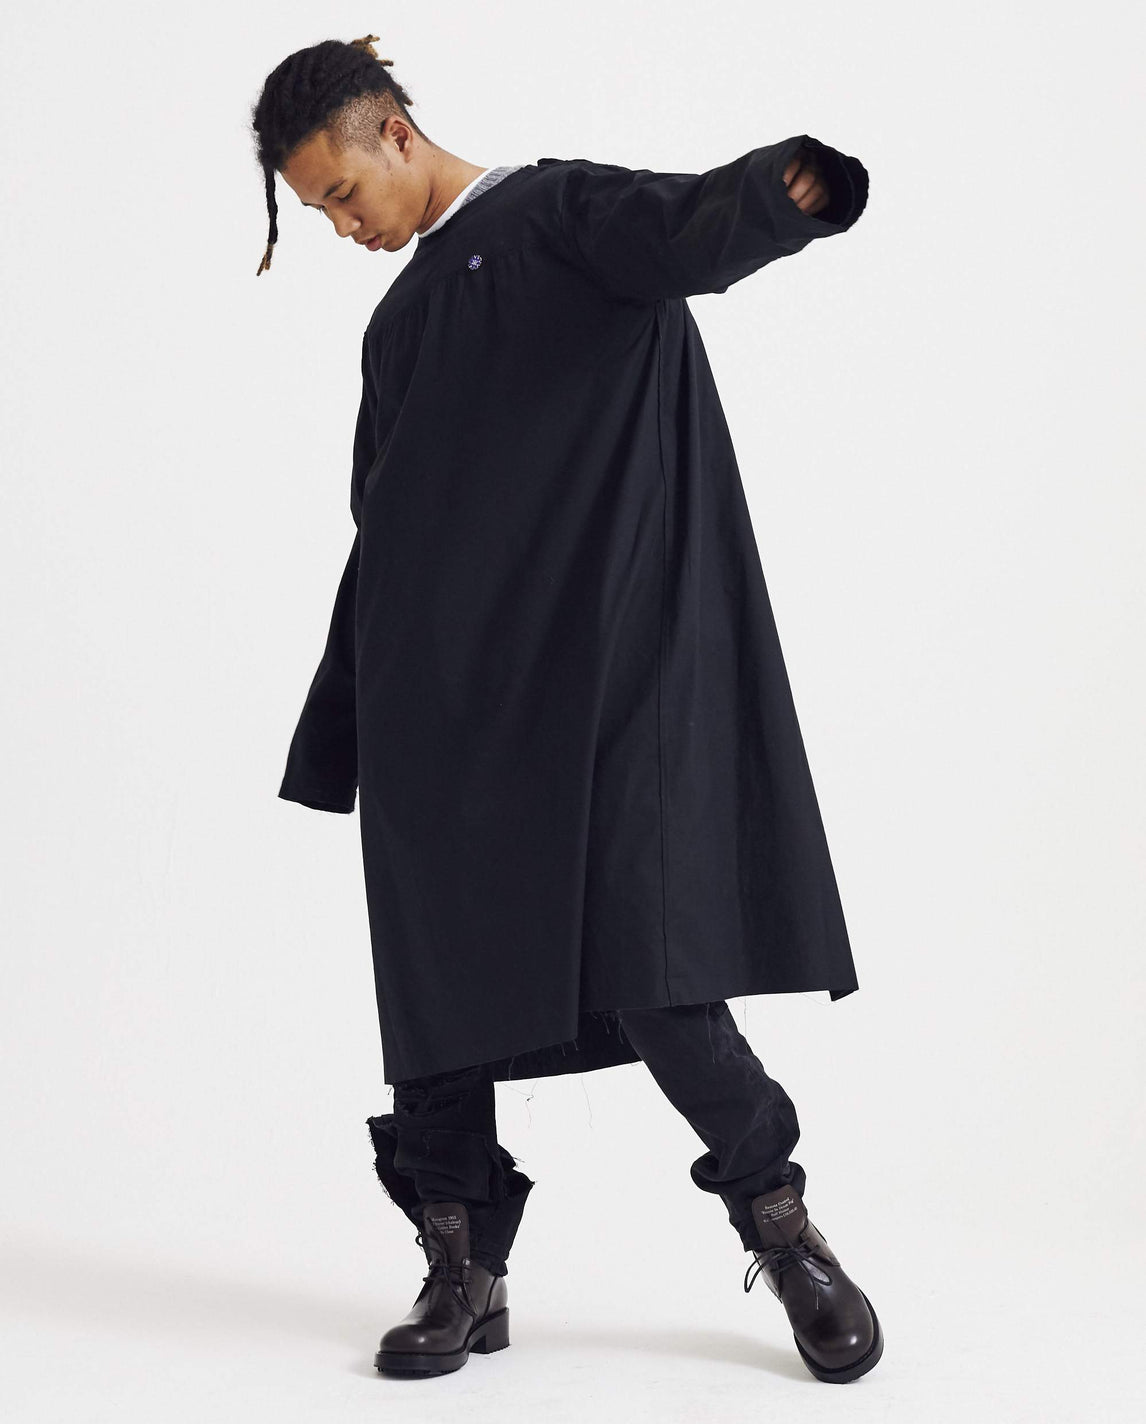 Labo Coat with Fron Yoke - Black MENS RAF SIMONS